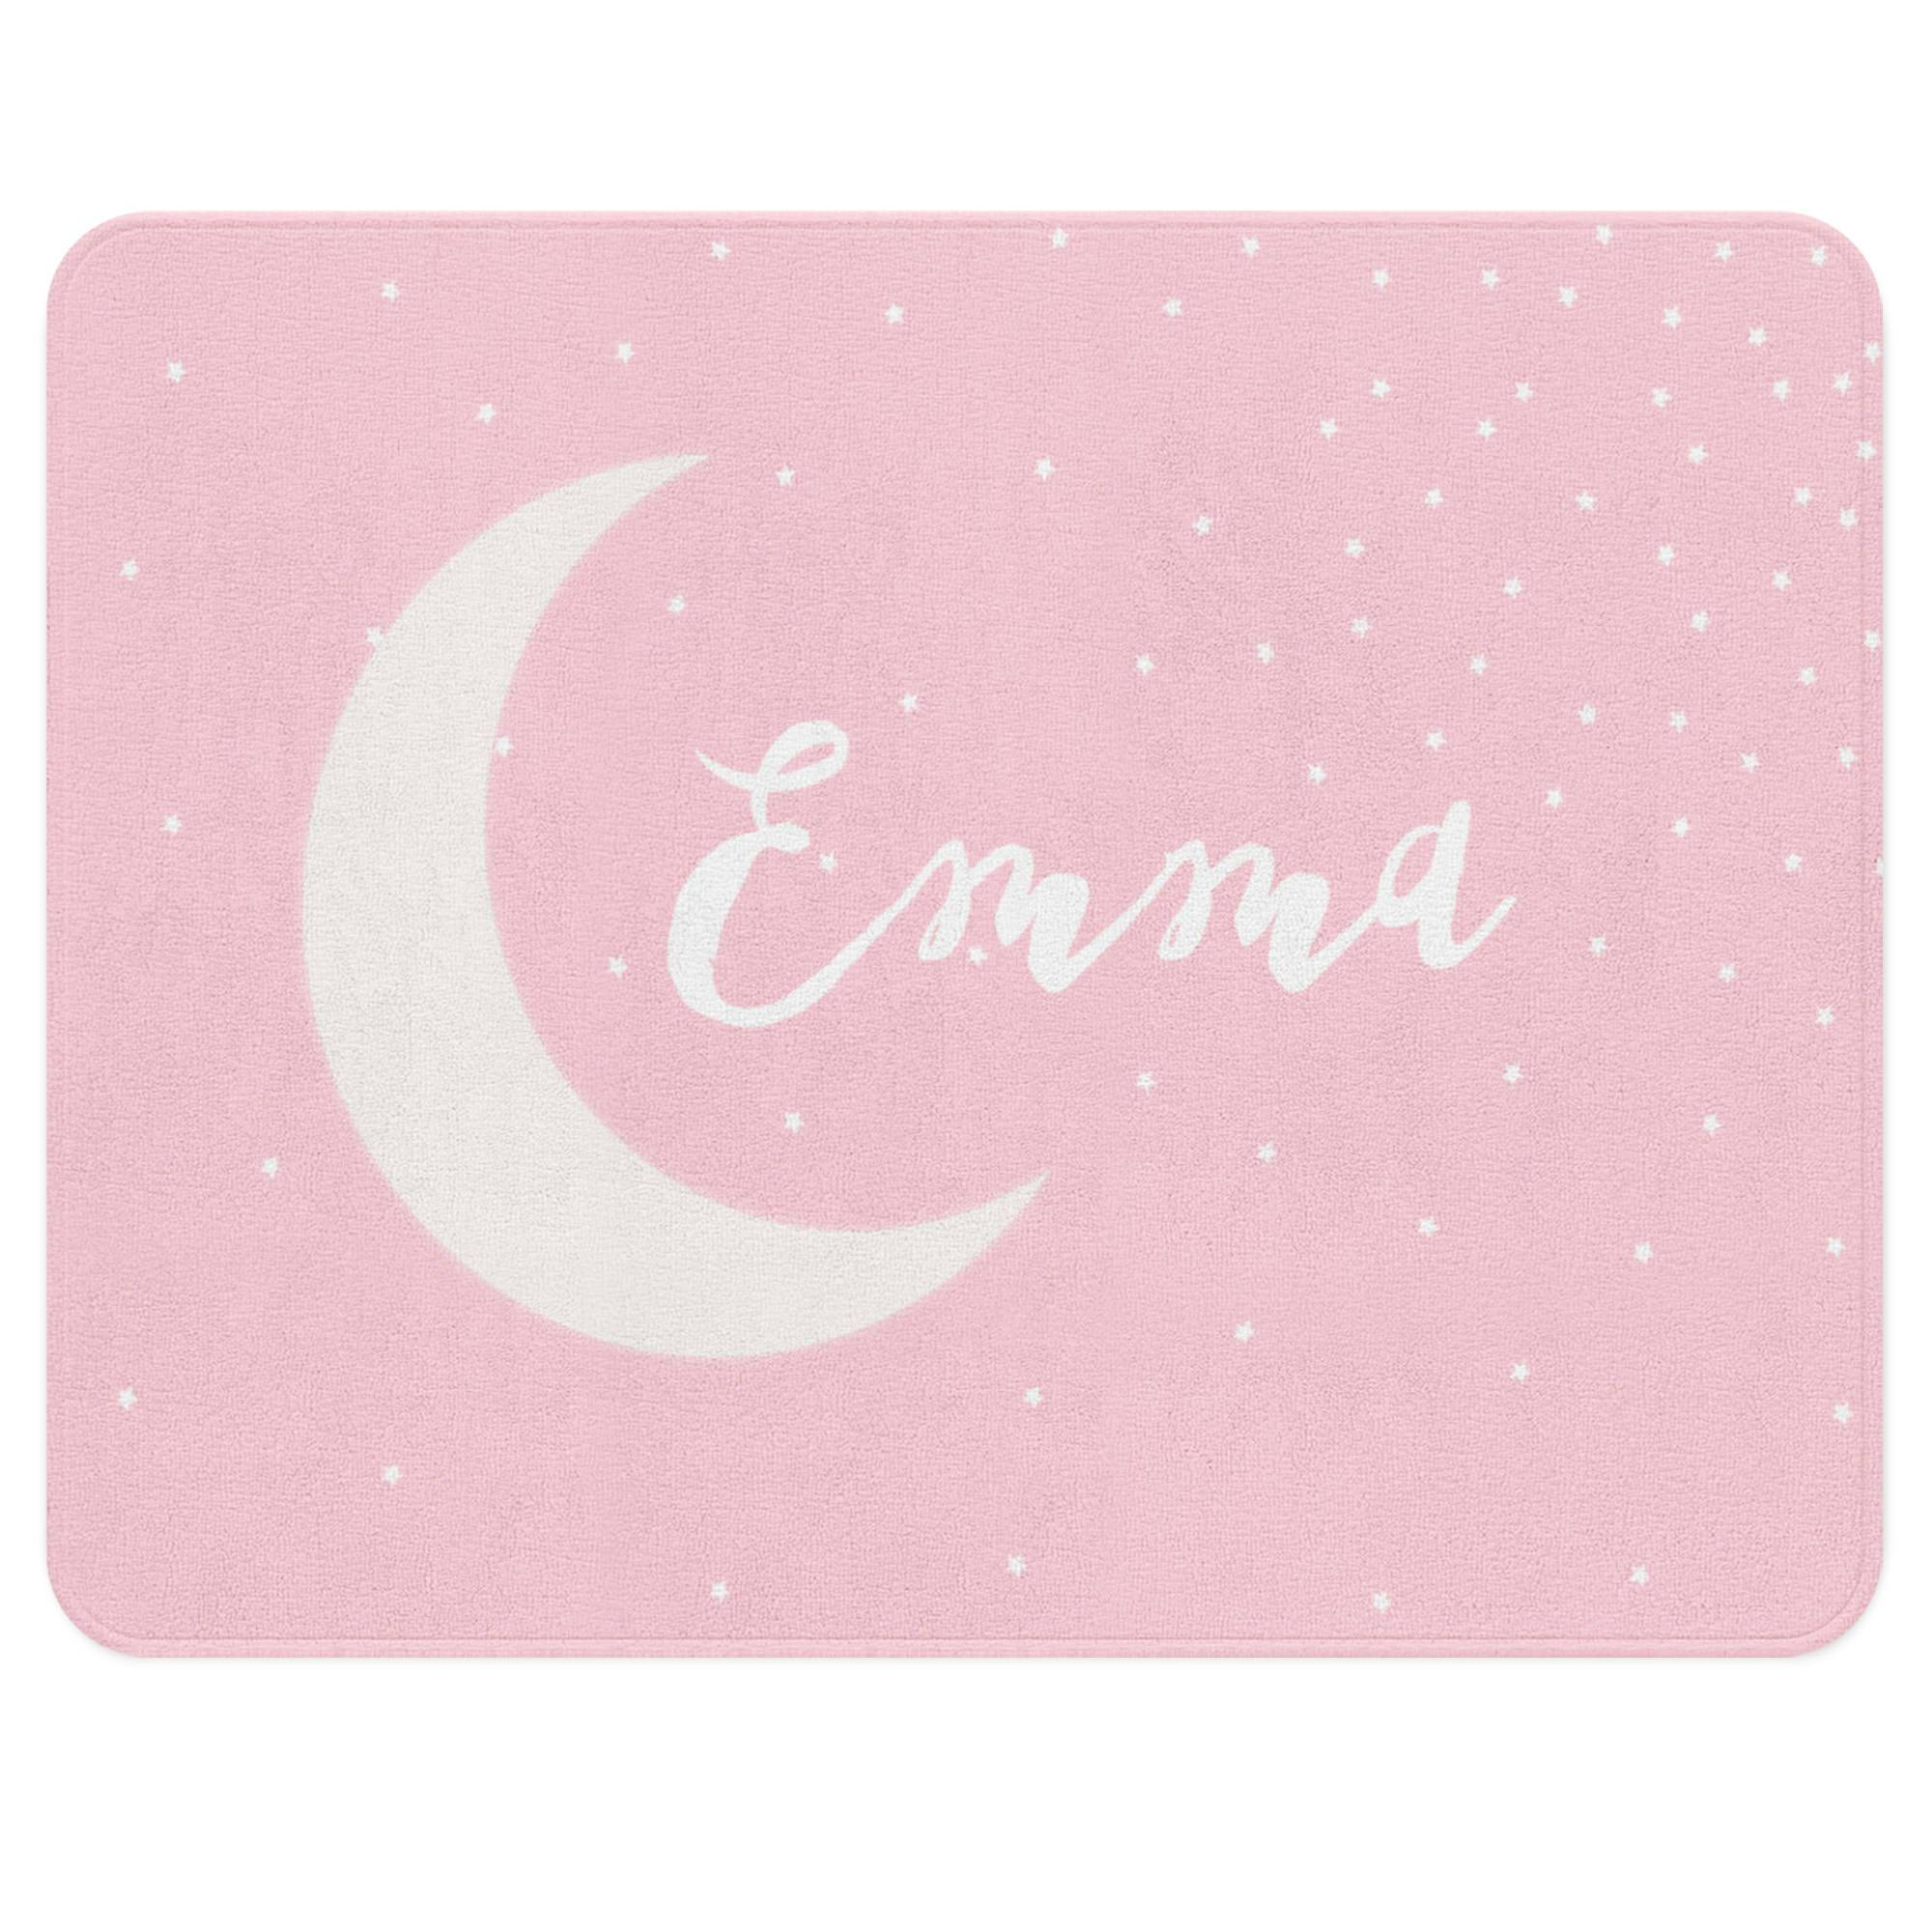 A pink rug with a stars sprinkled all over it. Customize it with your child's name floating gently over the moon in the center. Let this versatile piece add some calm to your little one's nursery.